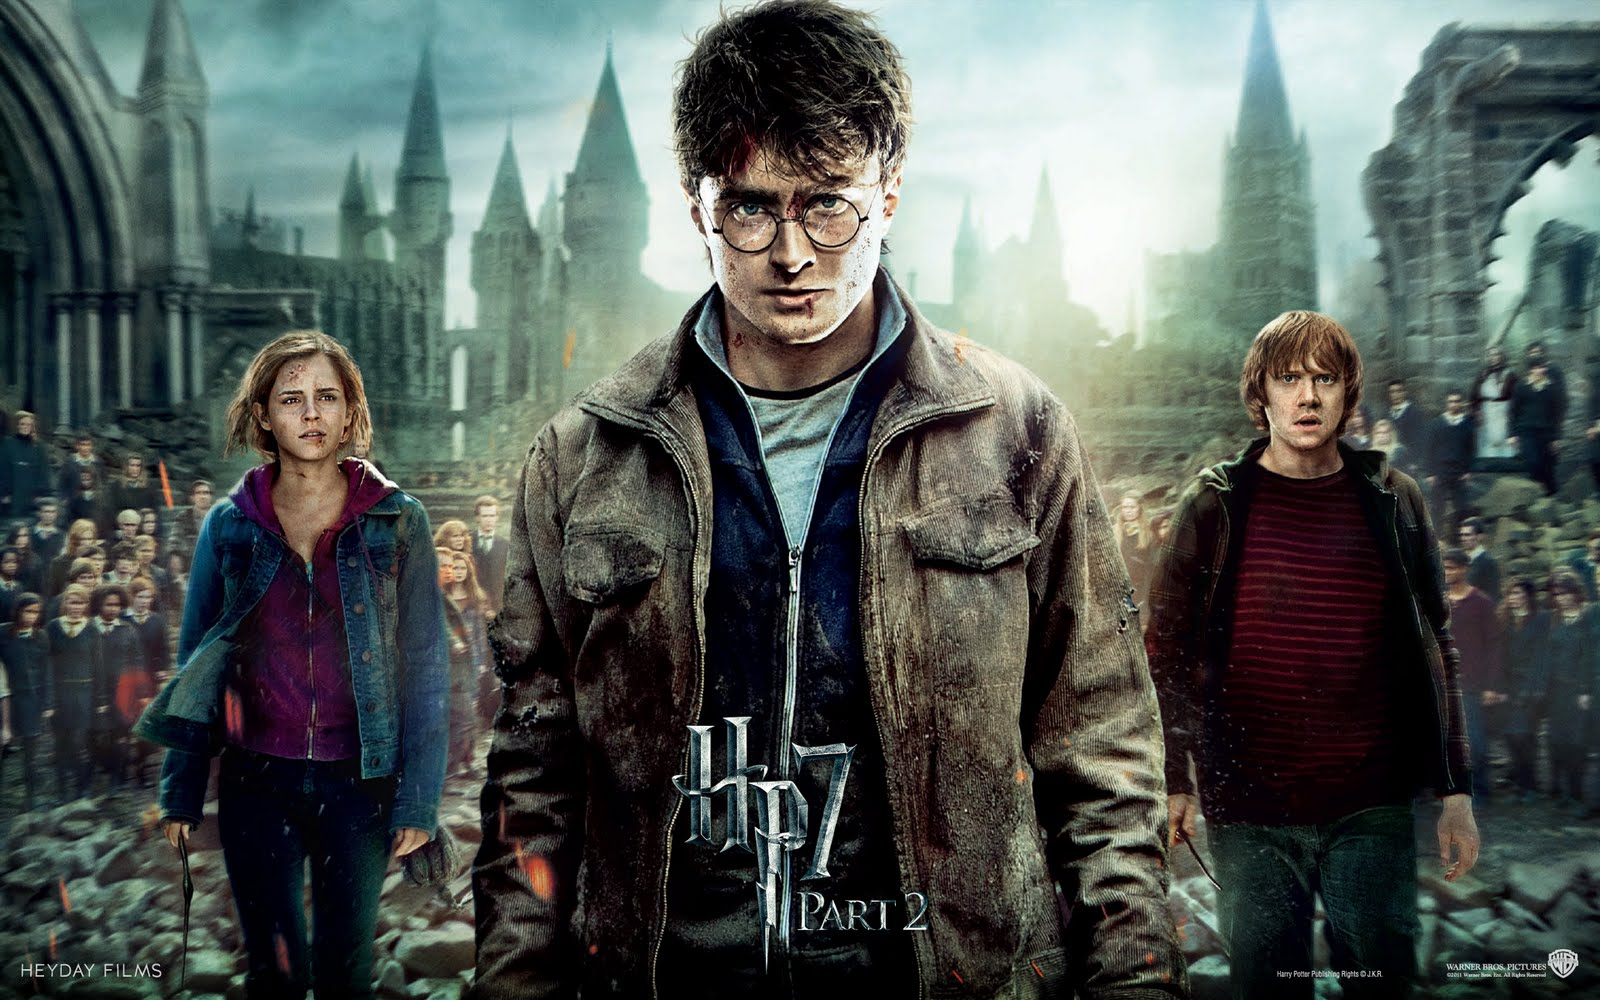 Harry Potter e as Relíquias da Morte: Parte 2 Torrent – BluRay Rip 1080p Dual Áudio (2011)